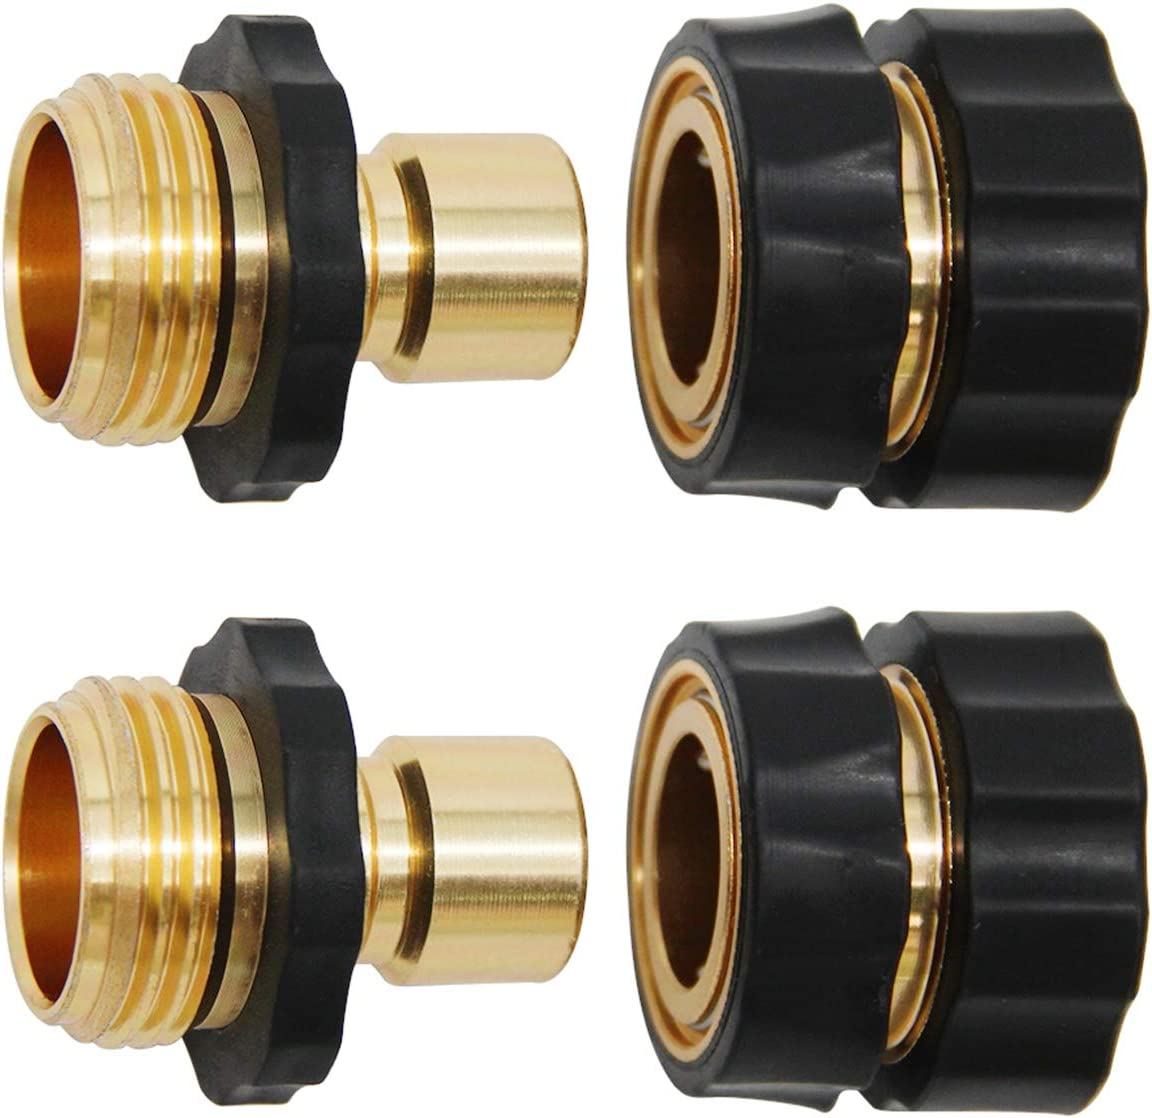 Lifynste 3/4 Inch Garden Hose Quick Connector Fittings, Brass Easy Connector Fitting, Male and Female Set, 2 Sets